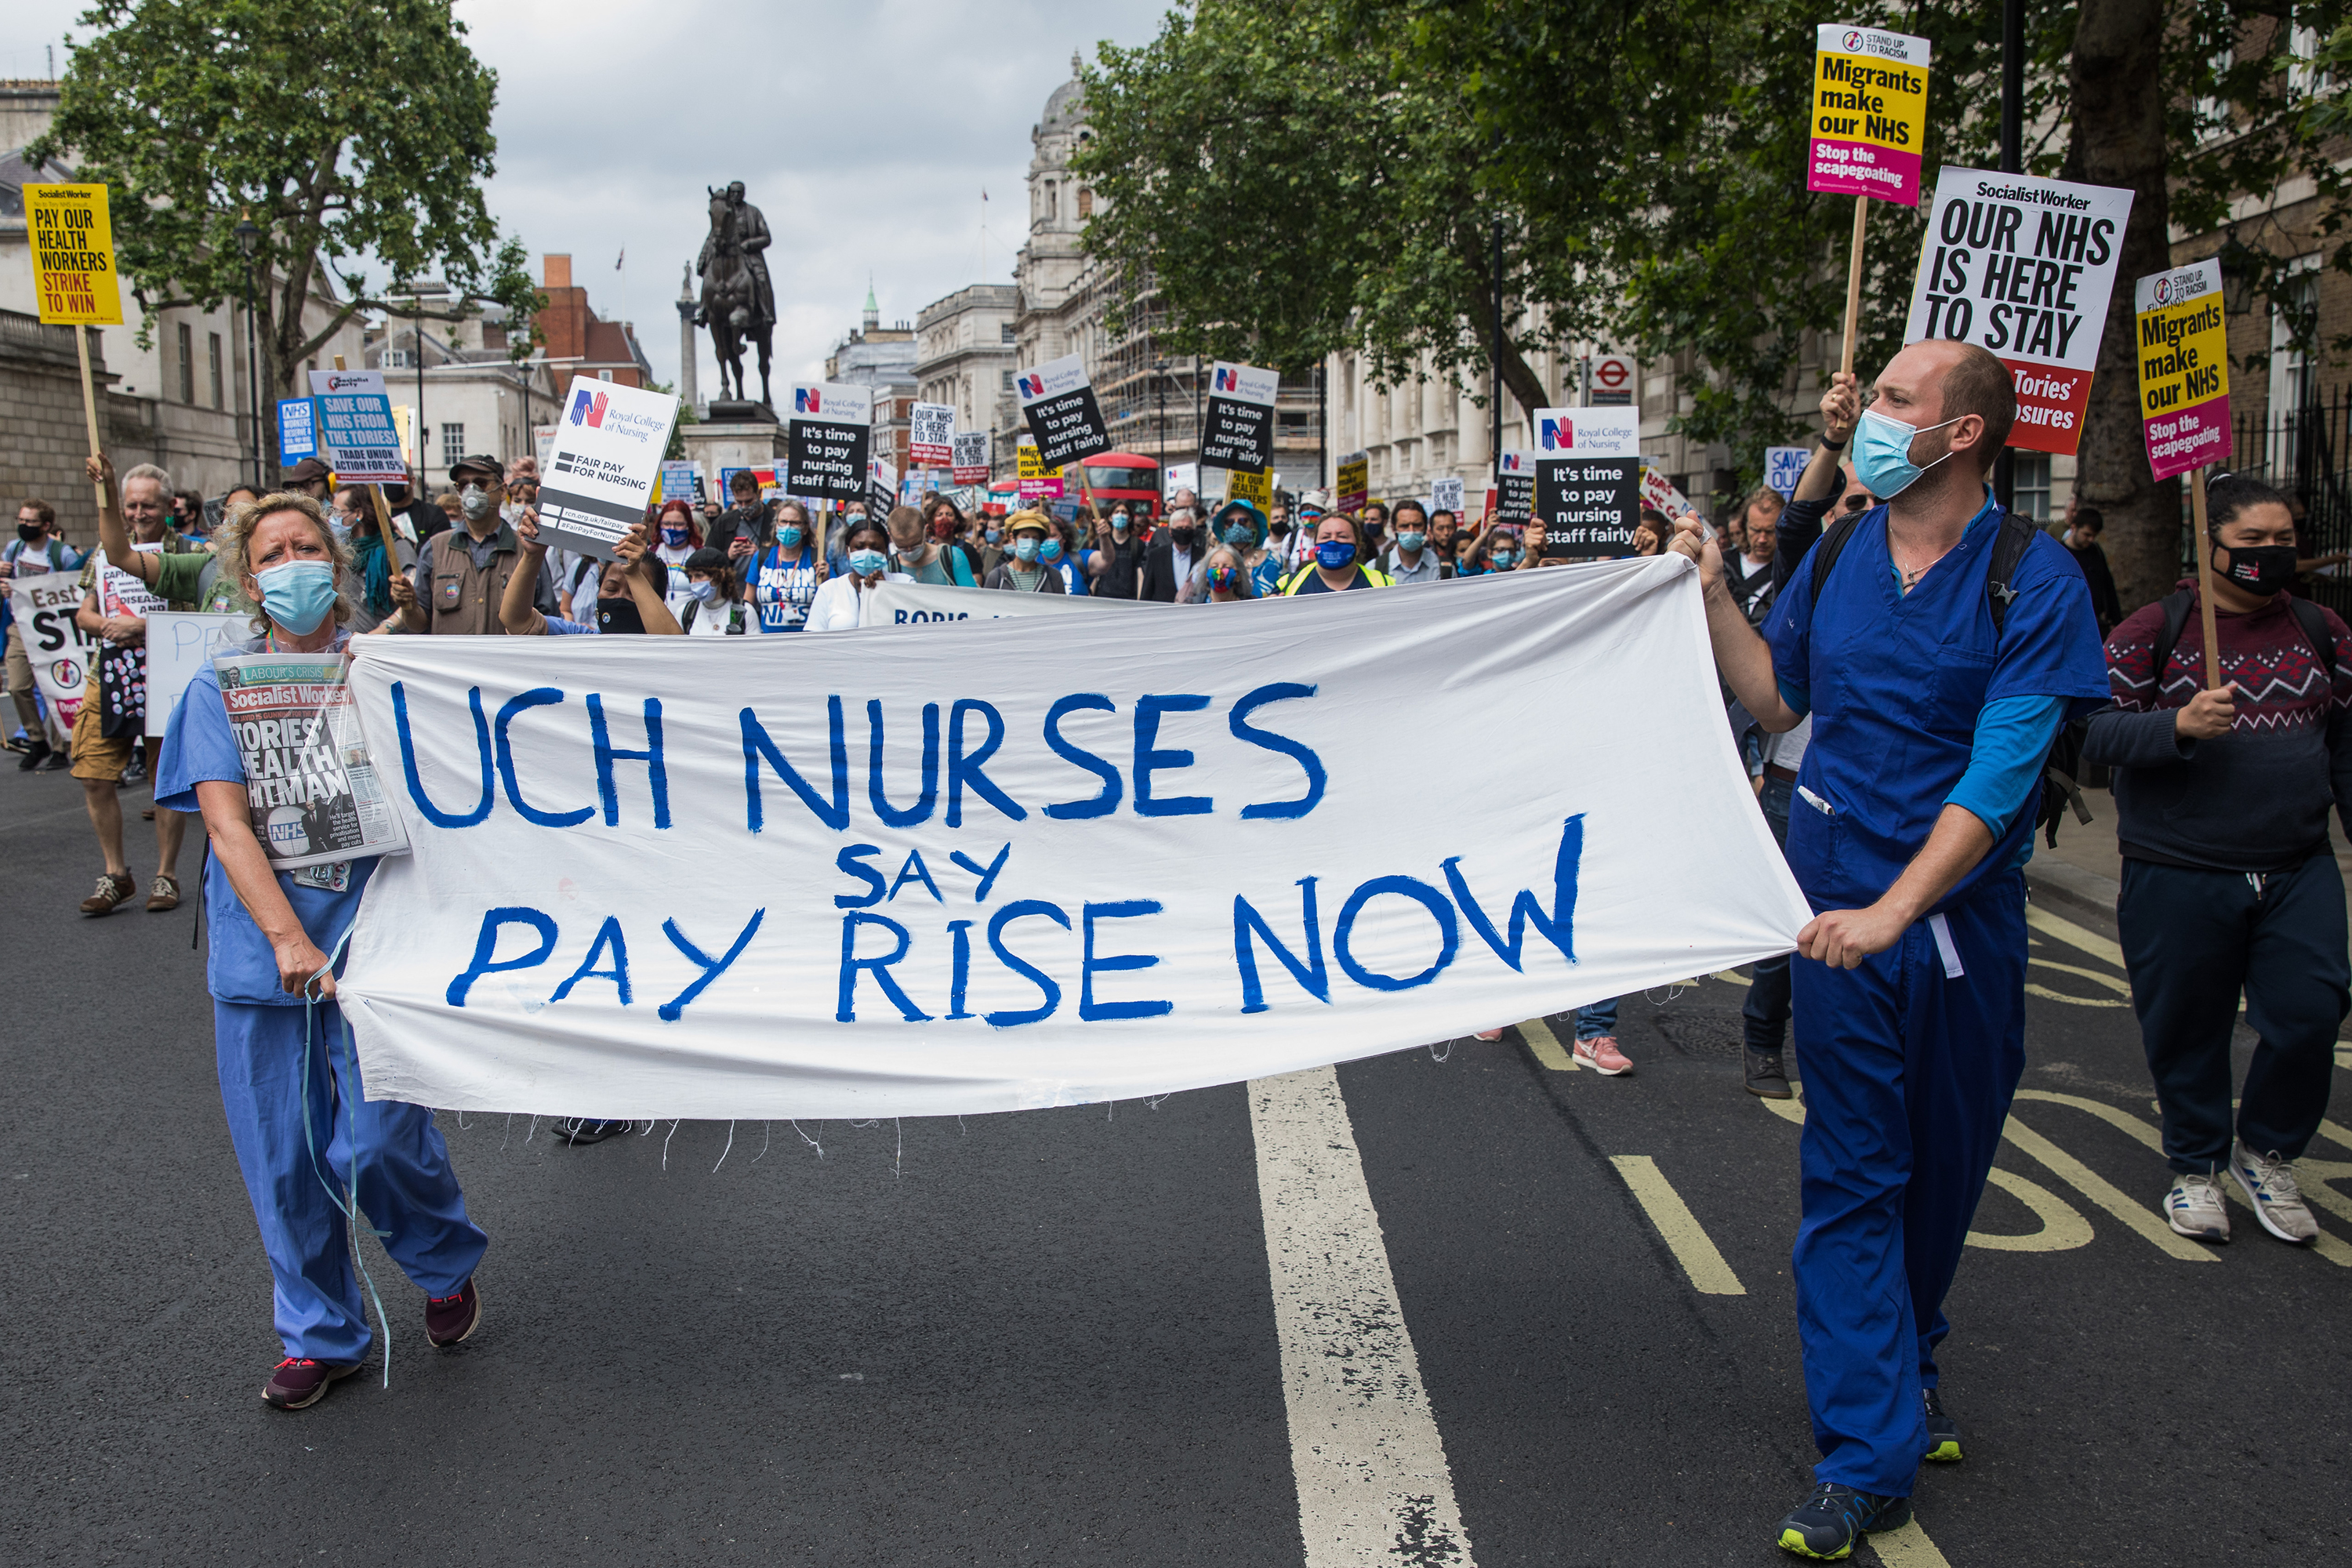 Healthcare workers and supporters take part in a protest march from University College Hospital to Whitehall on July 3, in London.